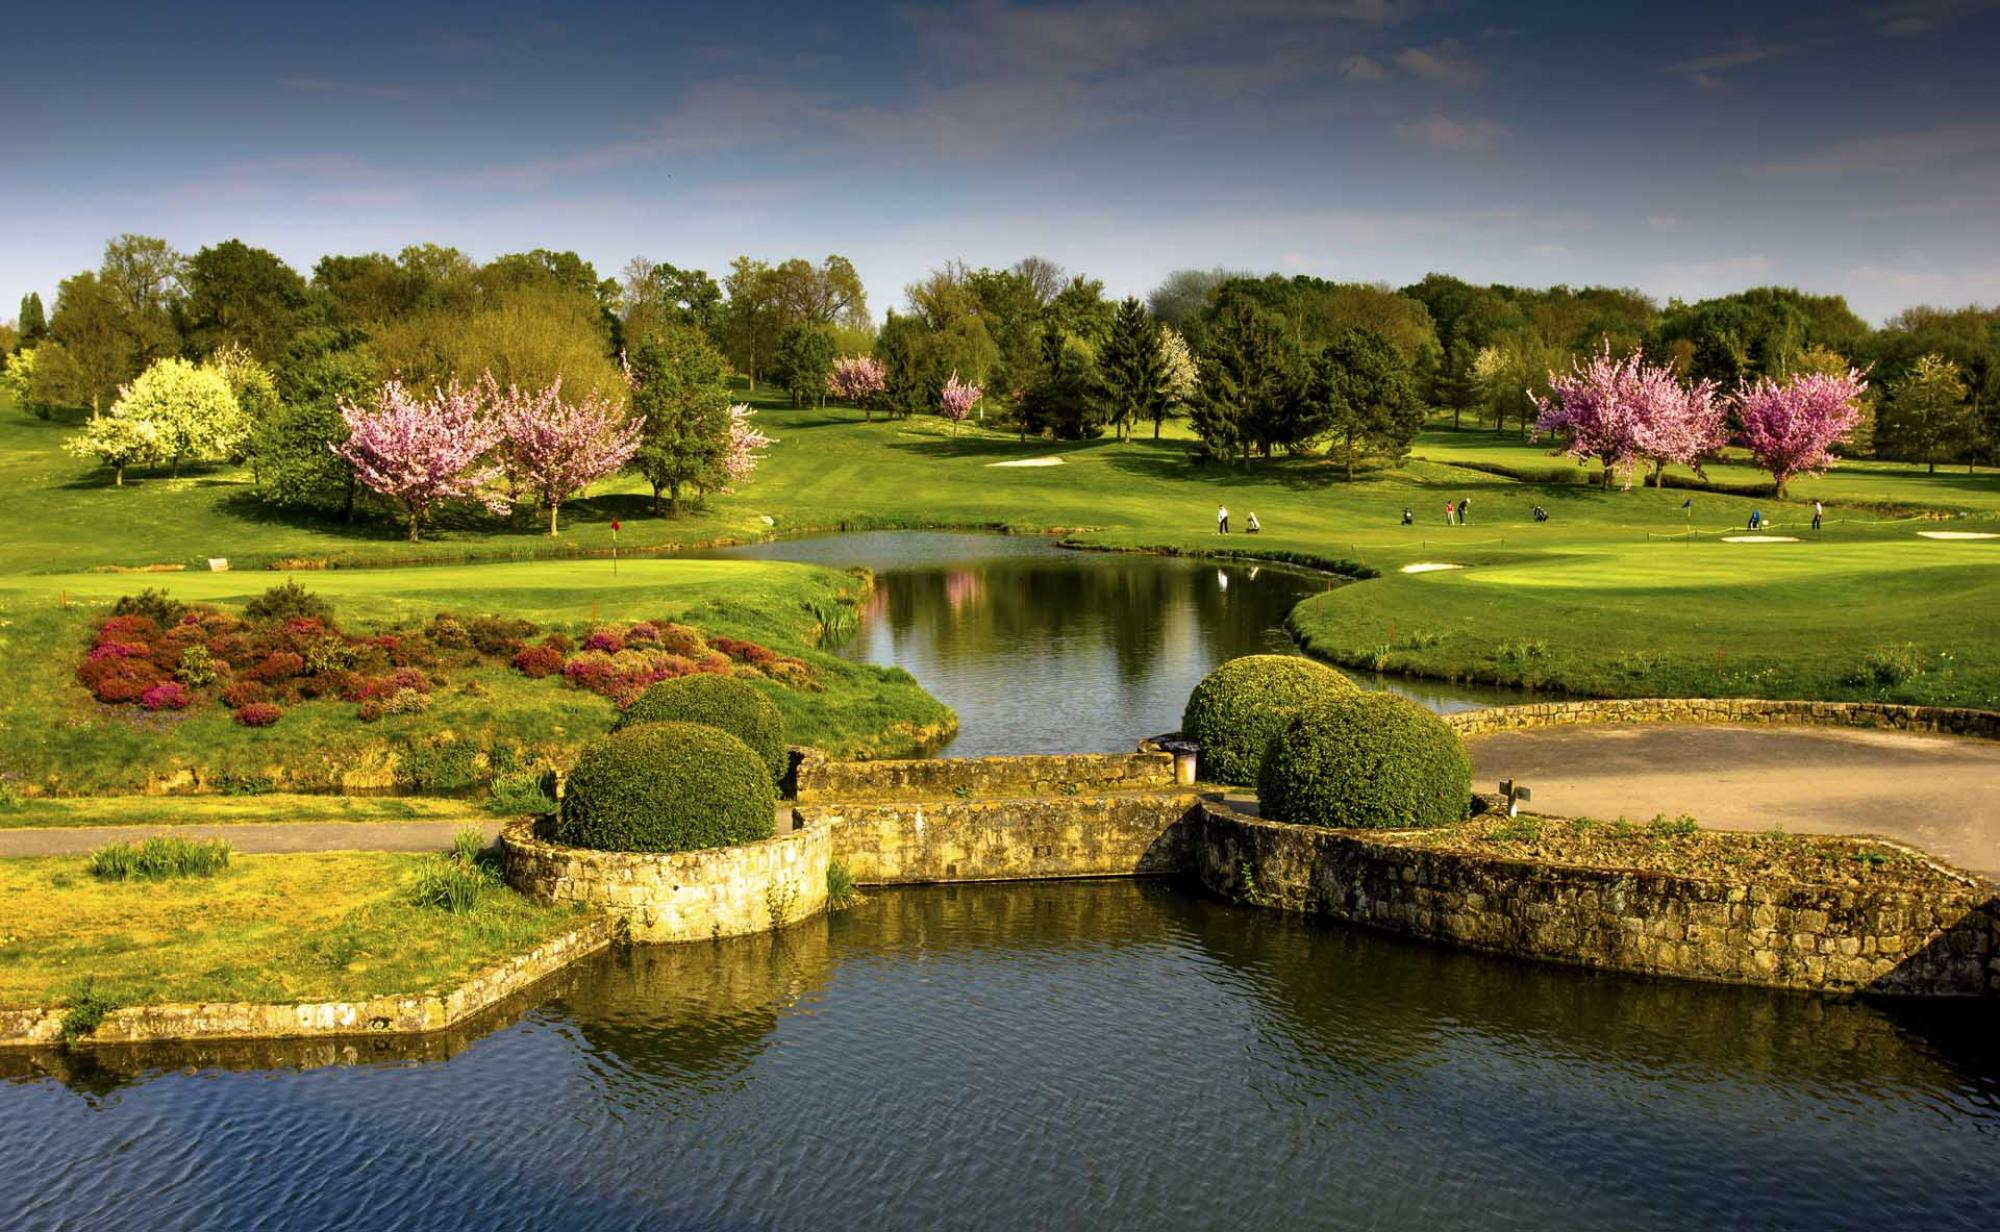 View Cely Golf Club's lovely golf course situated in brilliant Paris.